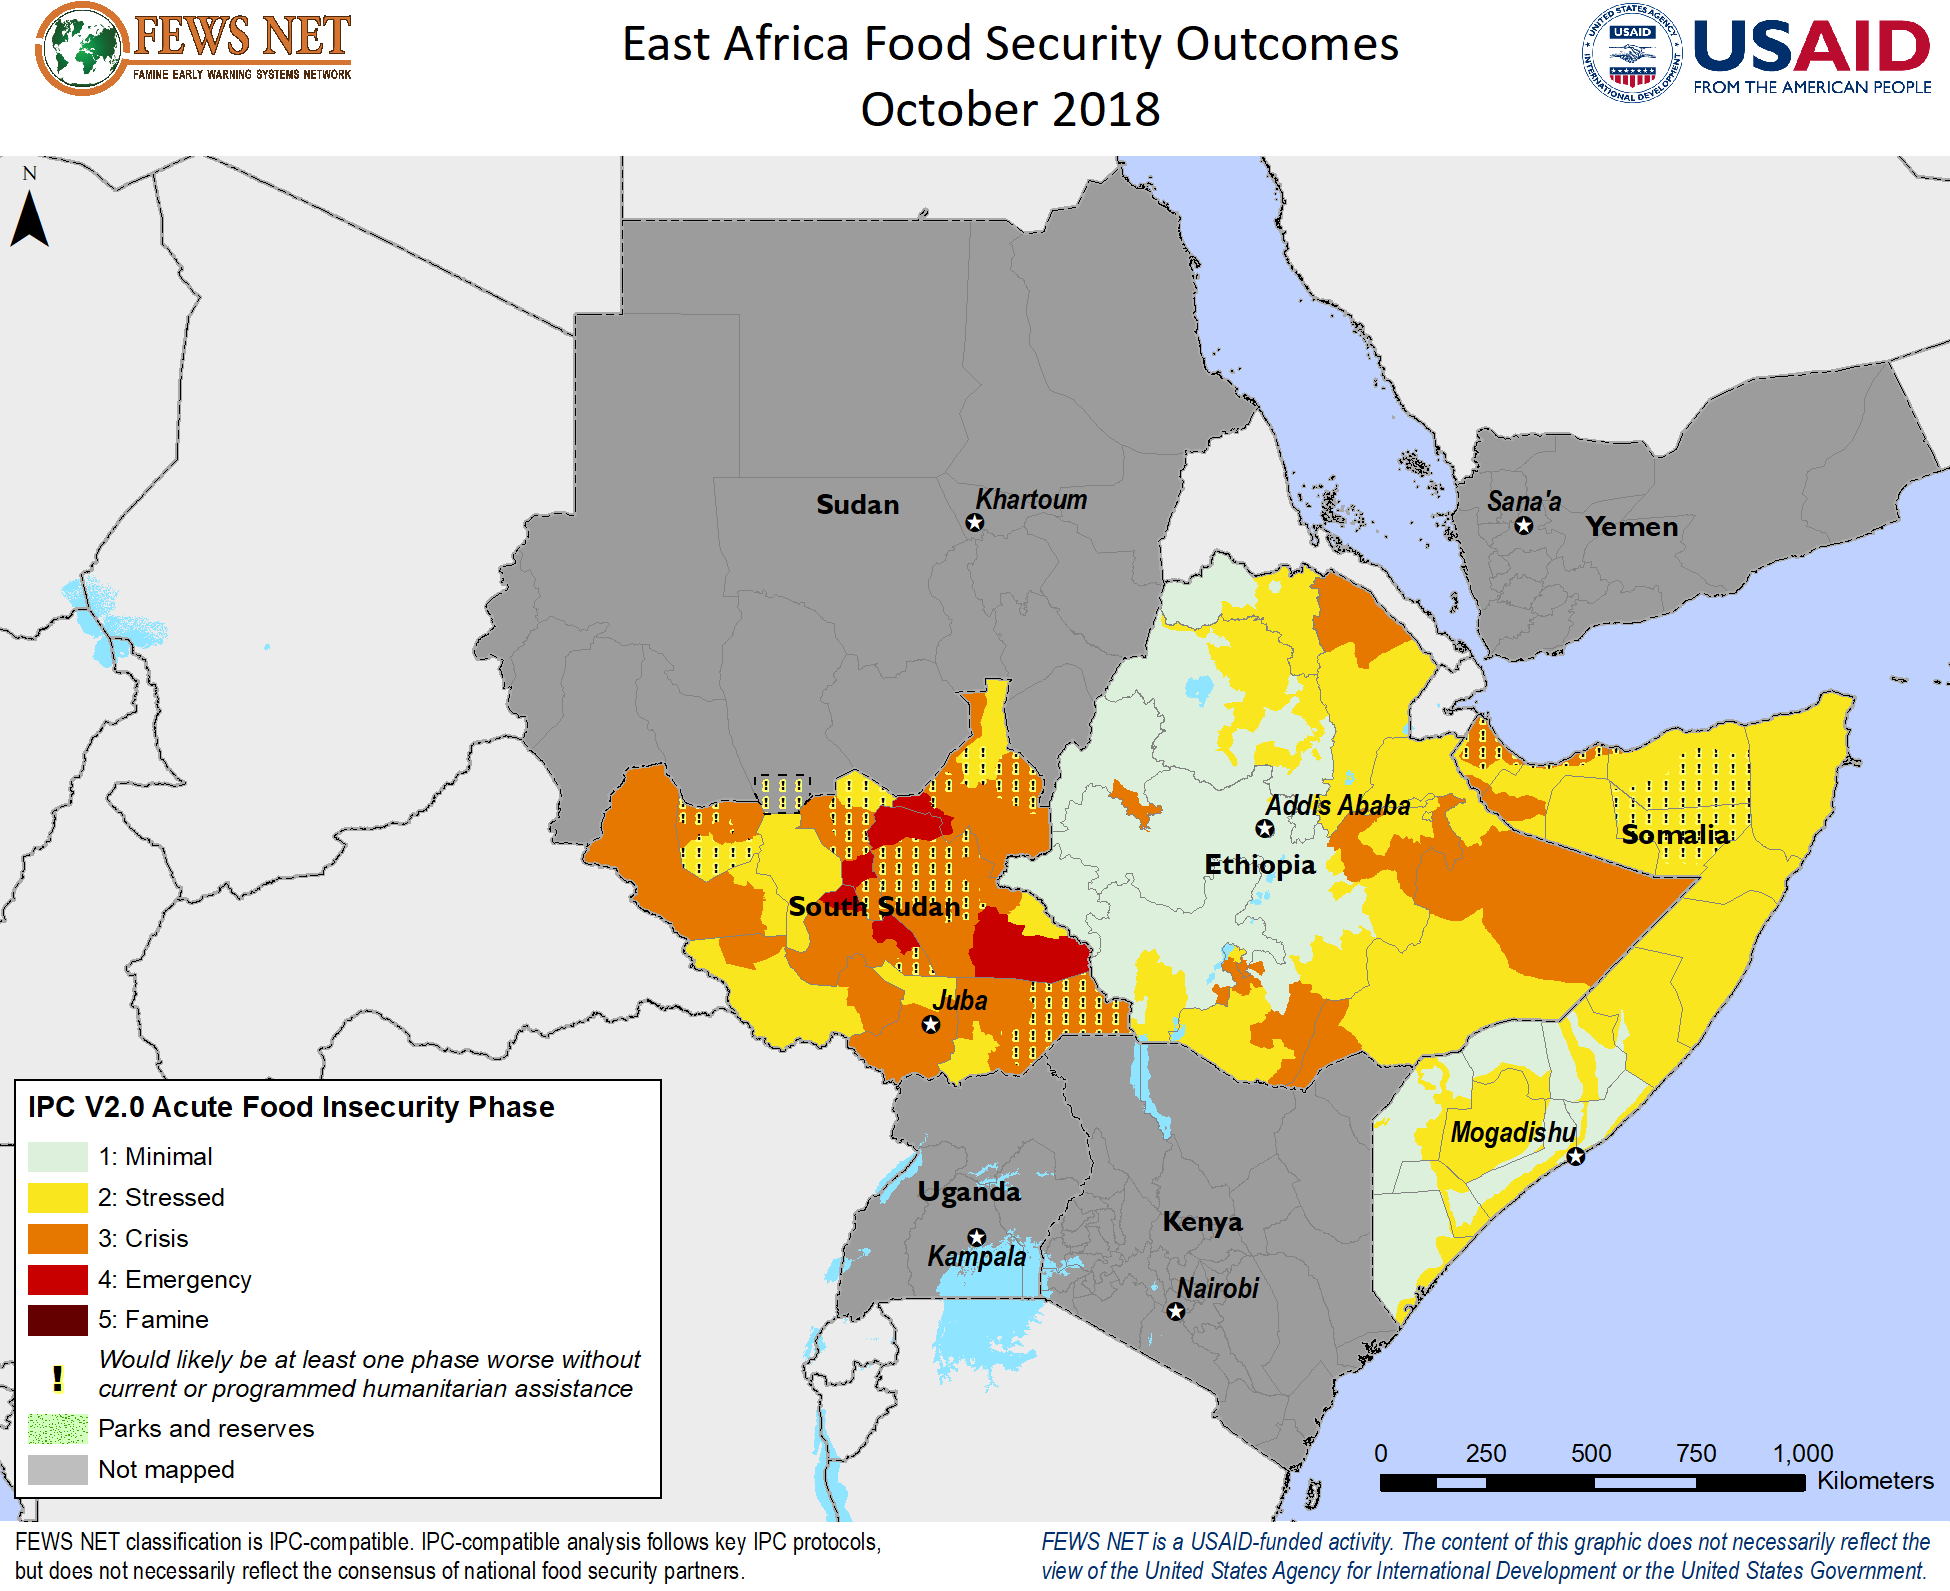 East Africa Food Security Classification (October 2018 - May 2019